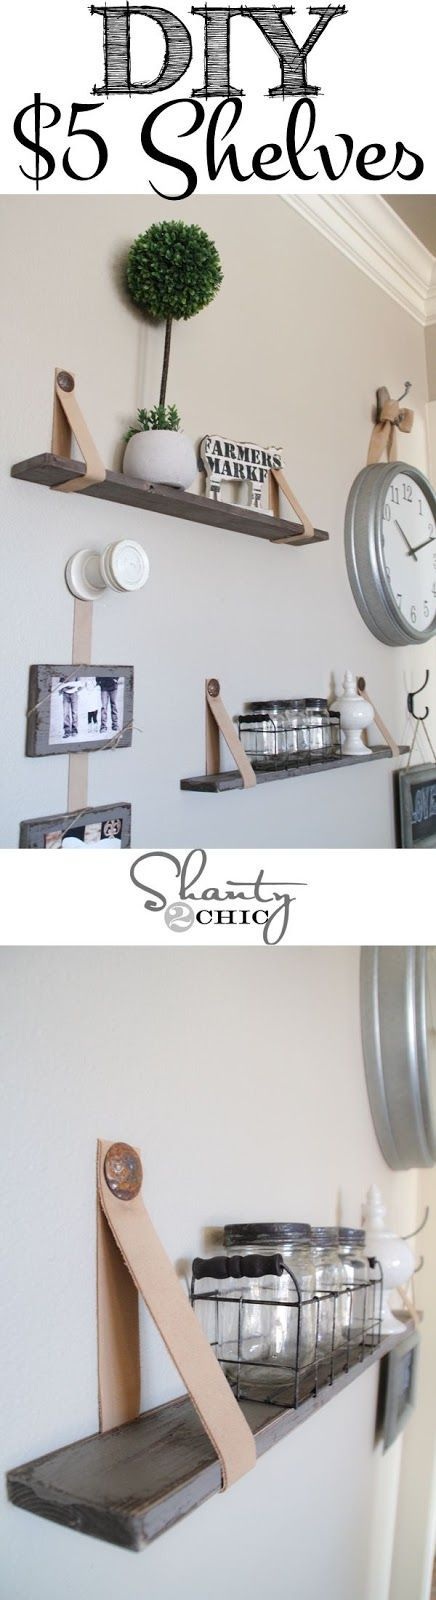 DIY $5 Shelves with Leather Straps | Home Decoration